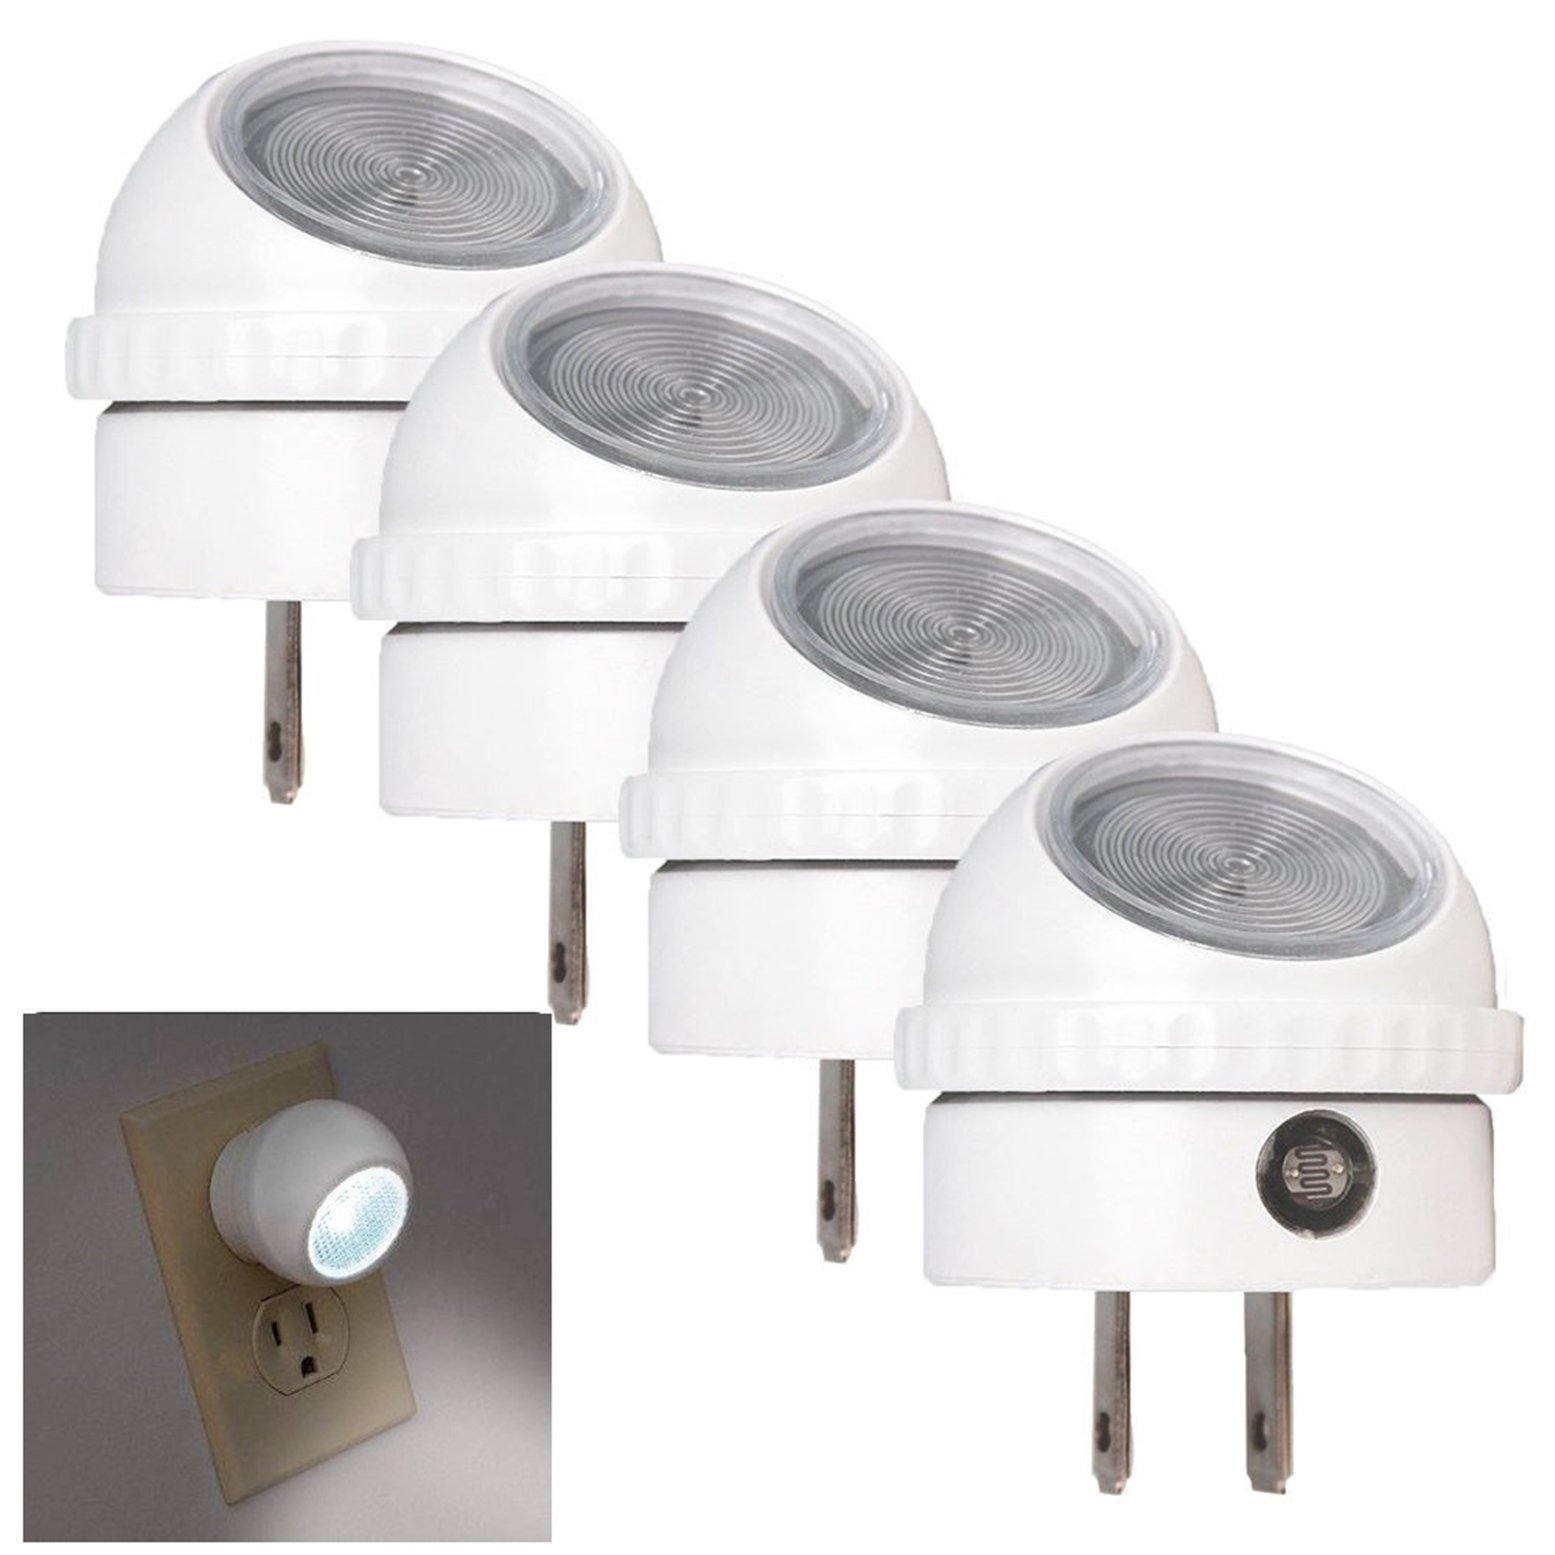 4 Set Auto Sensor LED Night Light Hallway Energy Saving Photocell Plug-In Bright Awe-inspiring Fashionable Color White